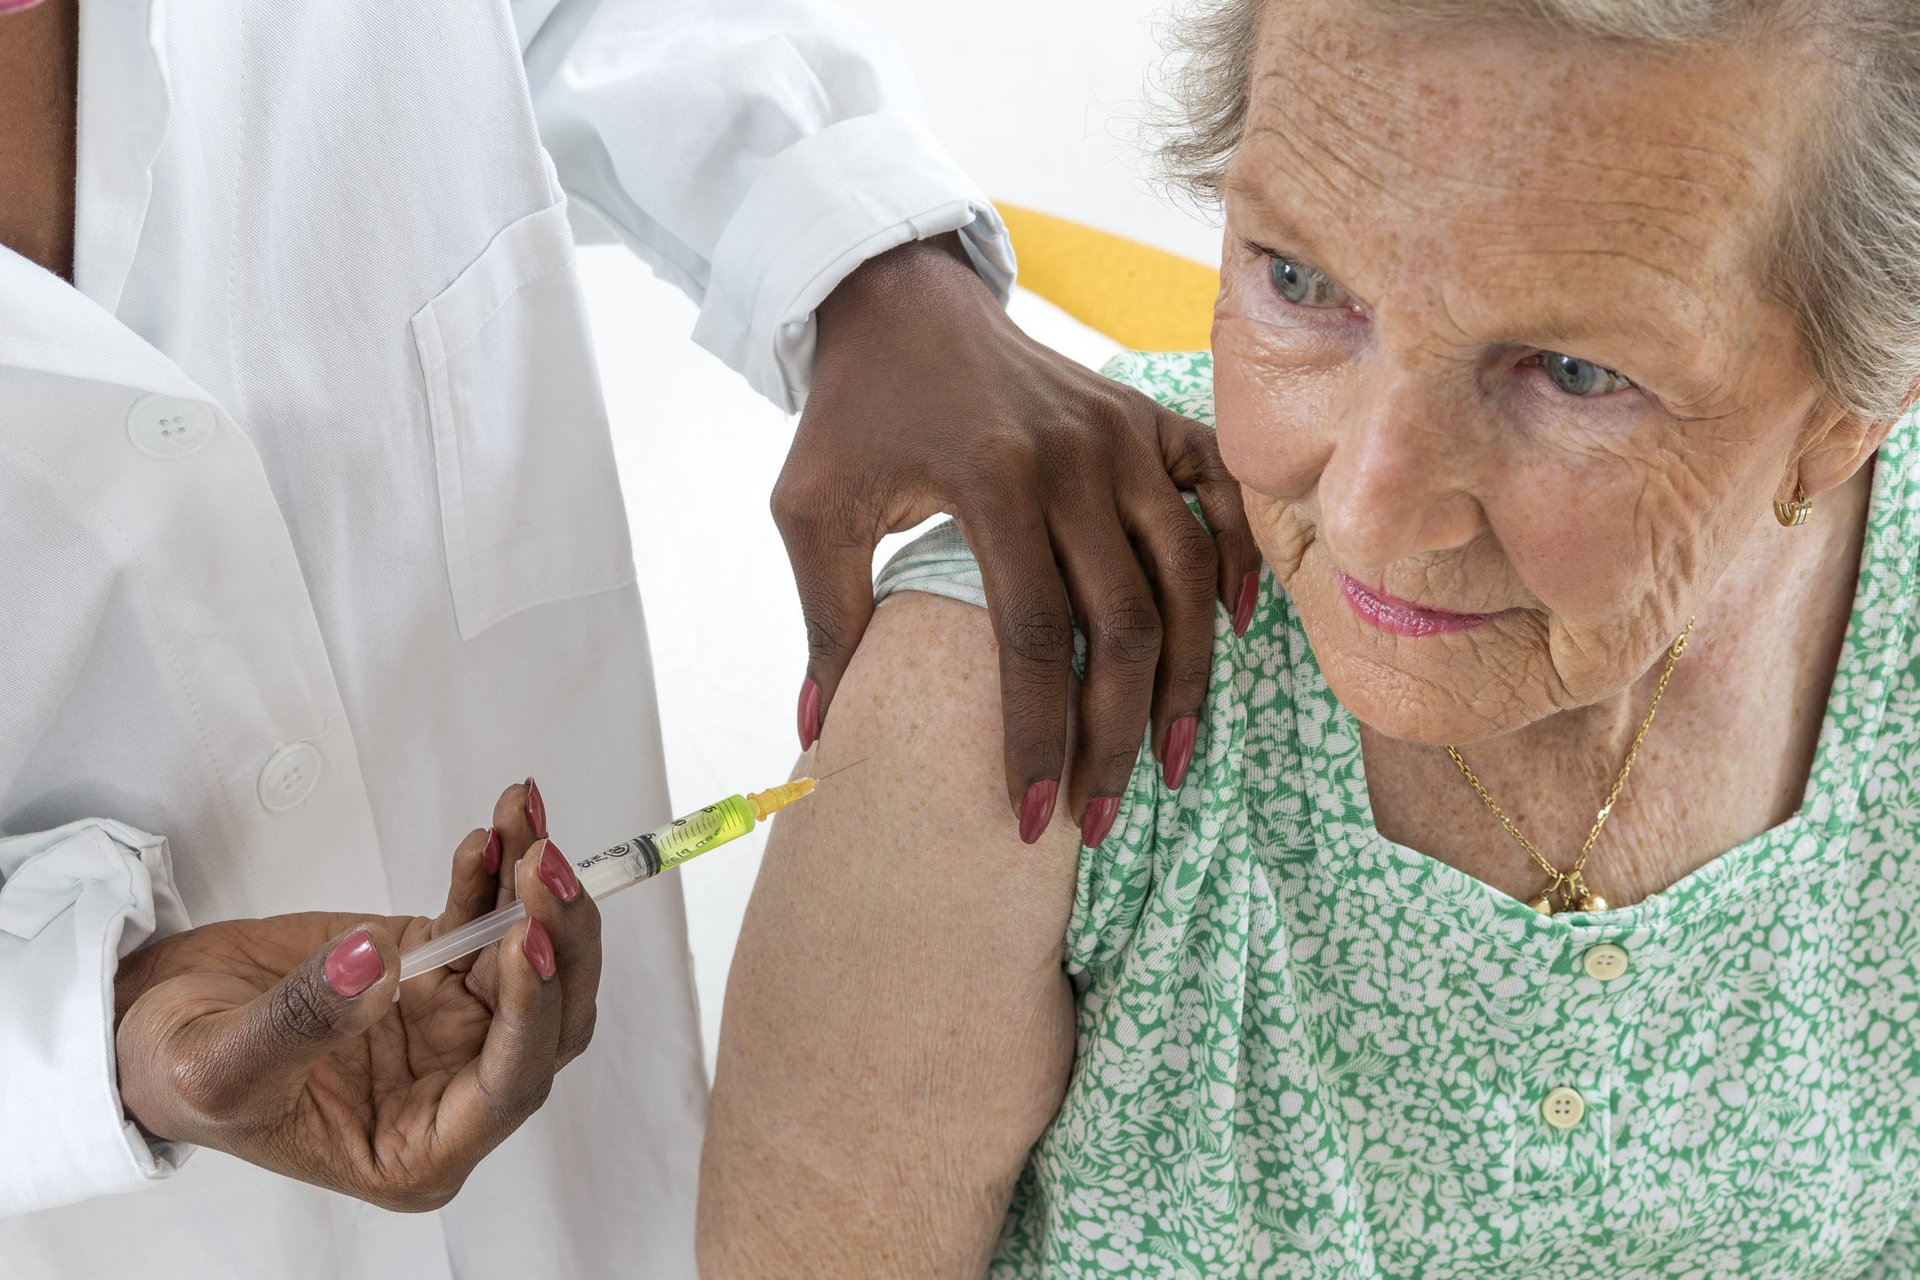 Woman getting a flu shot